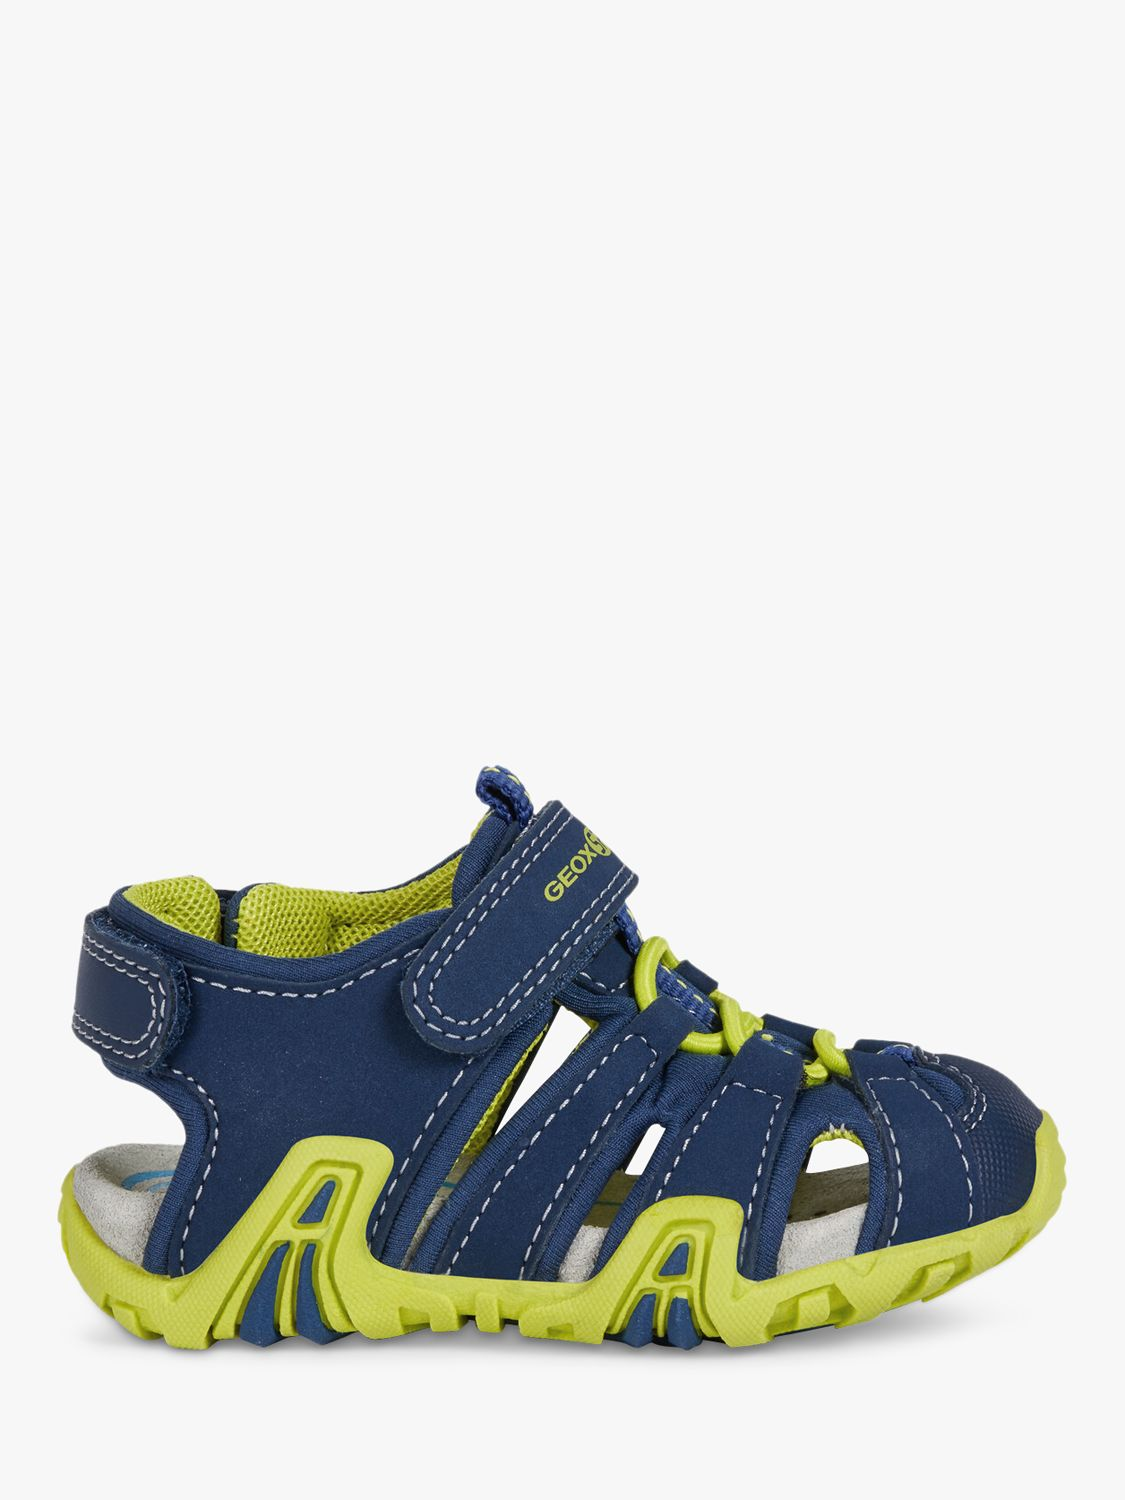 Geox Geox Junior Kraze Riptape Sandals, Navy/Lime